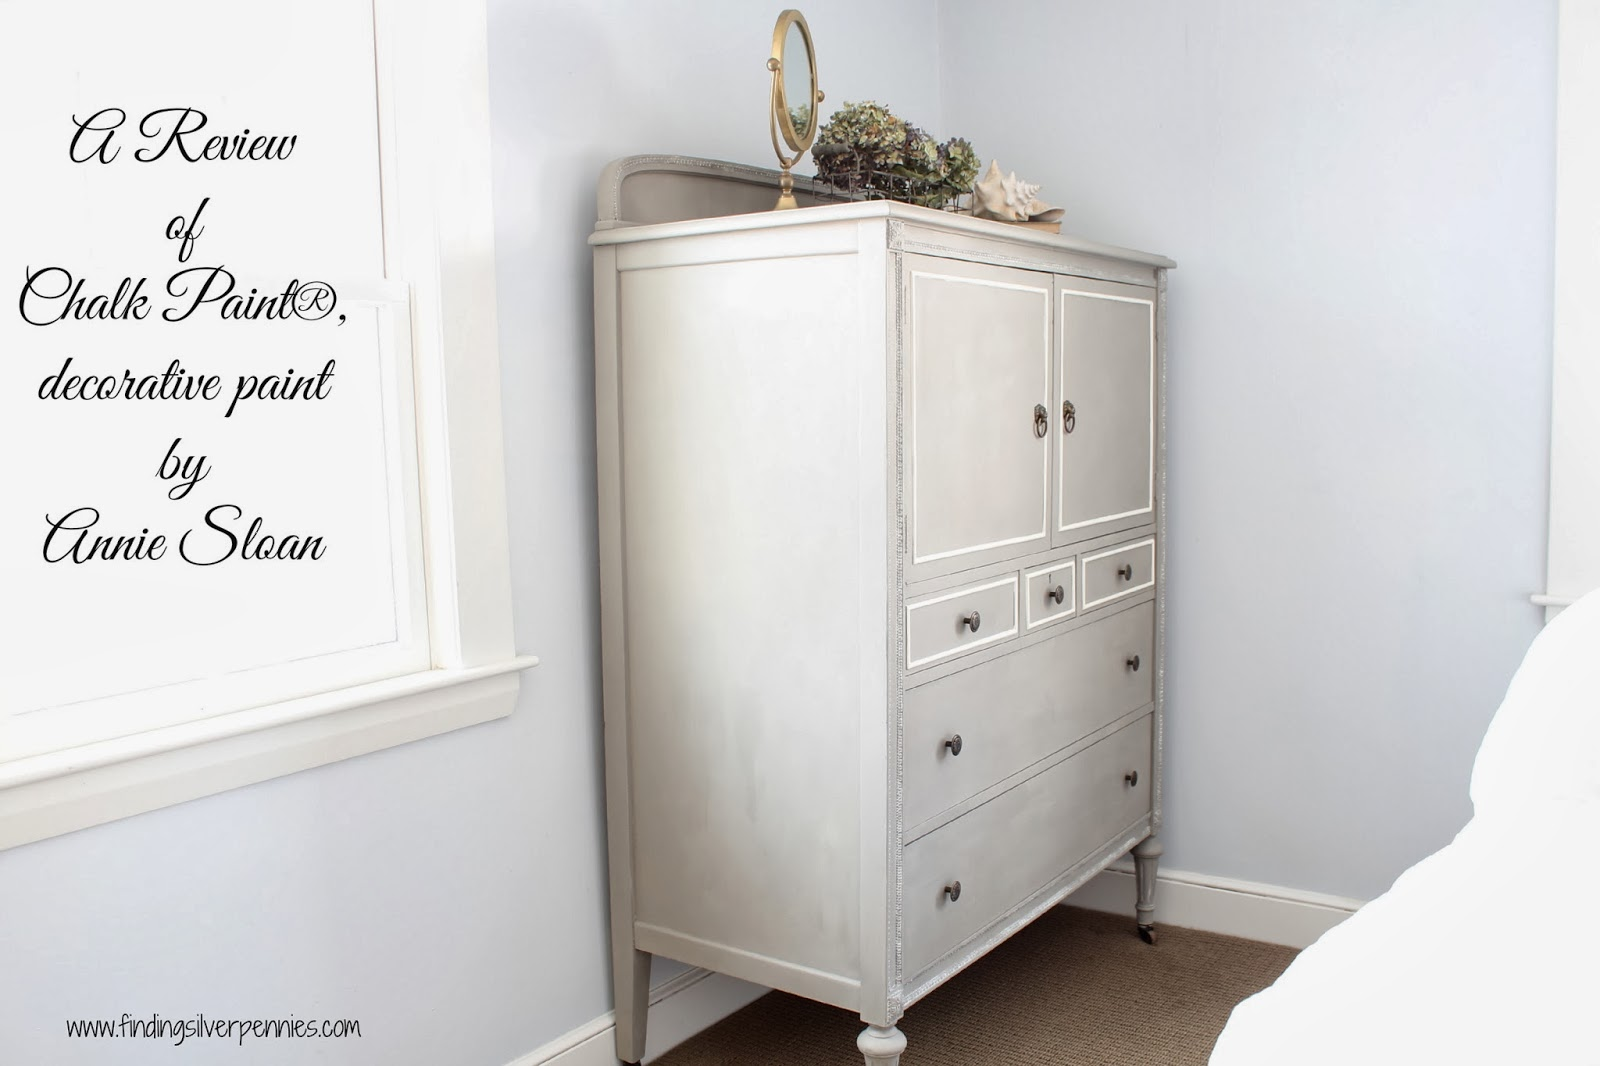 title_chalkpaint_review